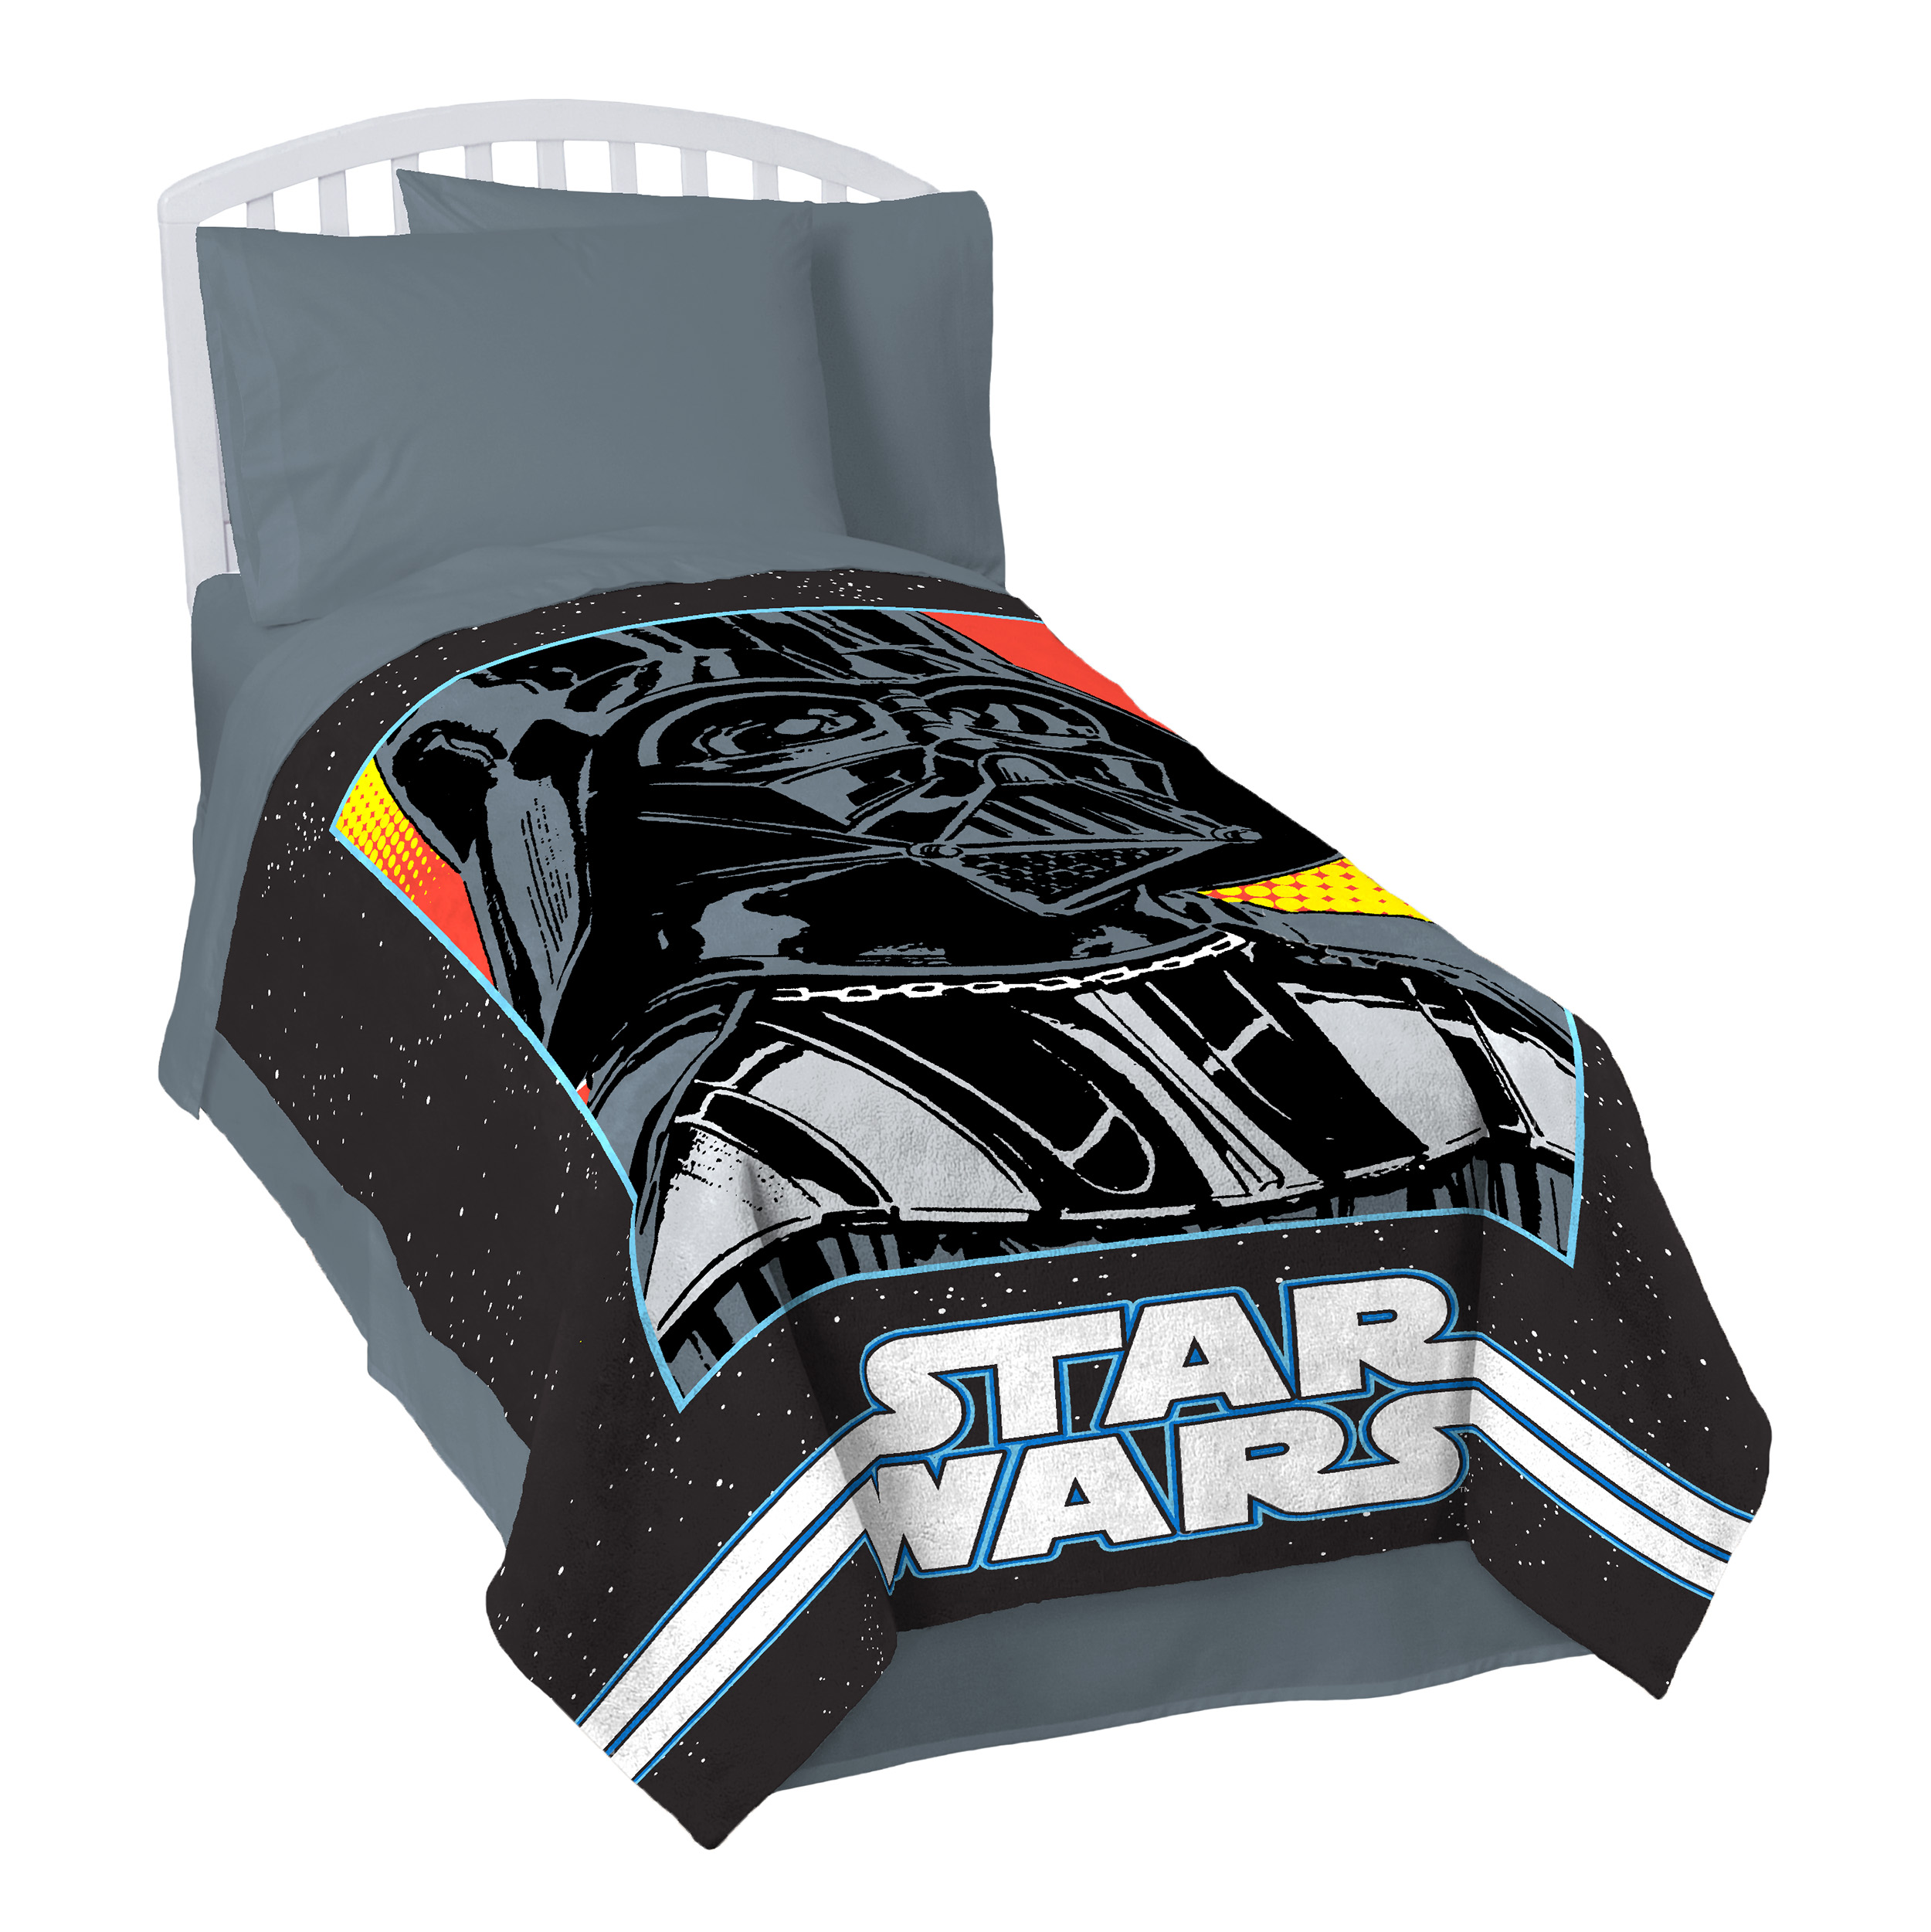 Star Wars Classic Grid 2 Coral Fleece Blanket